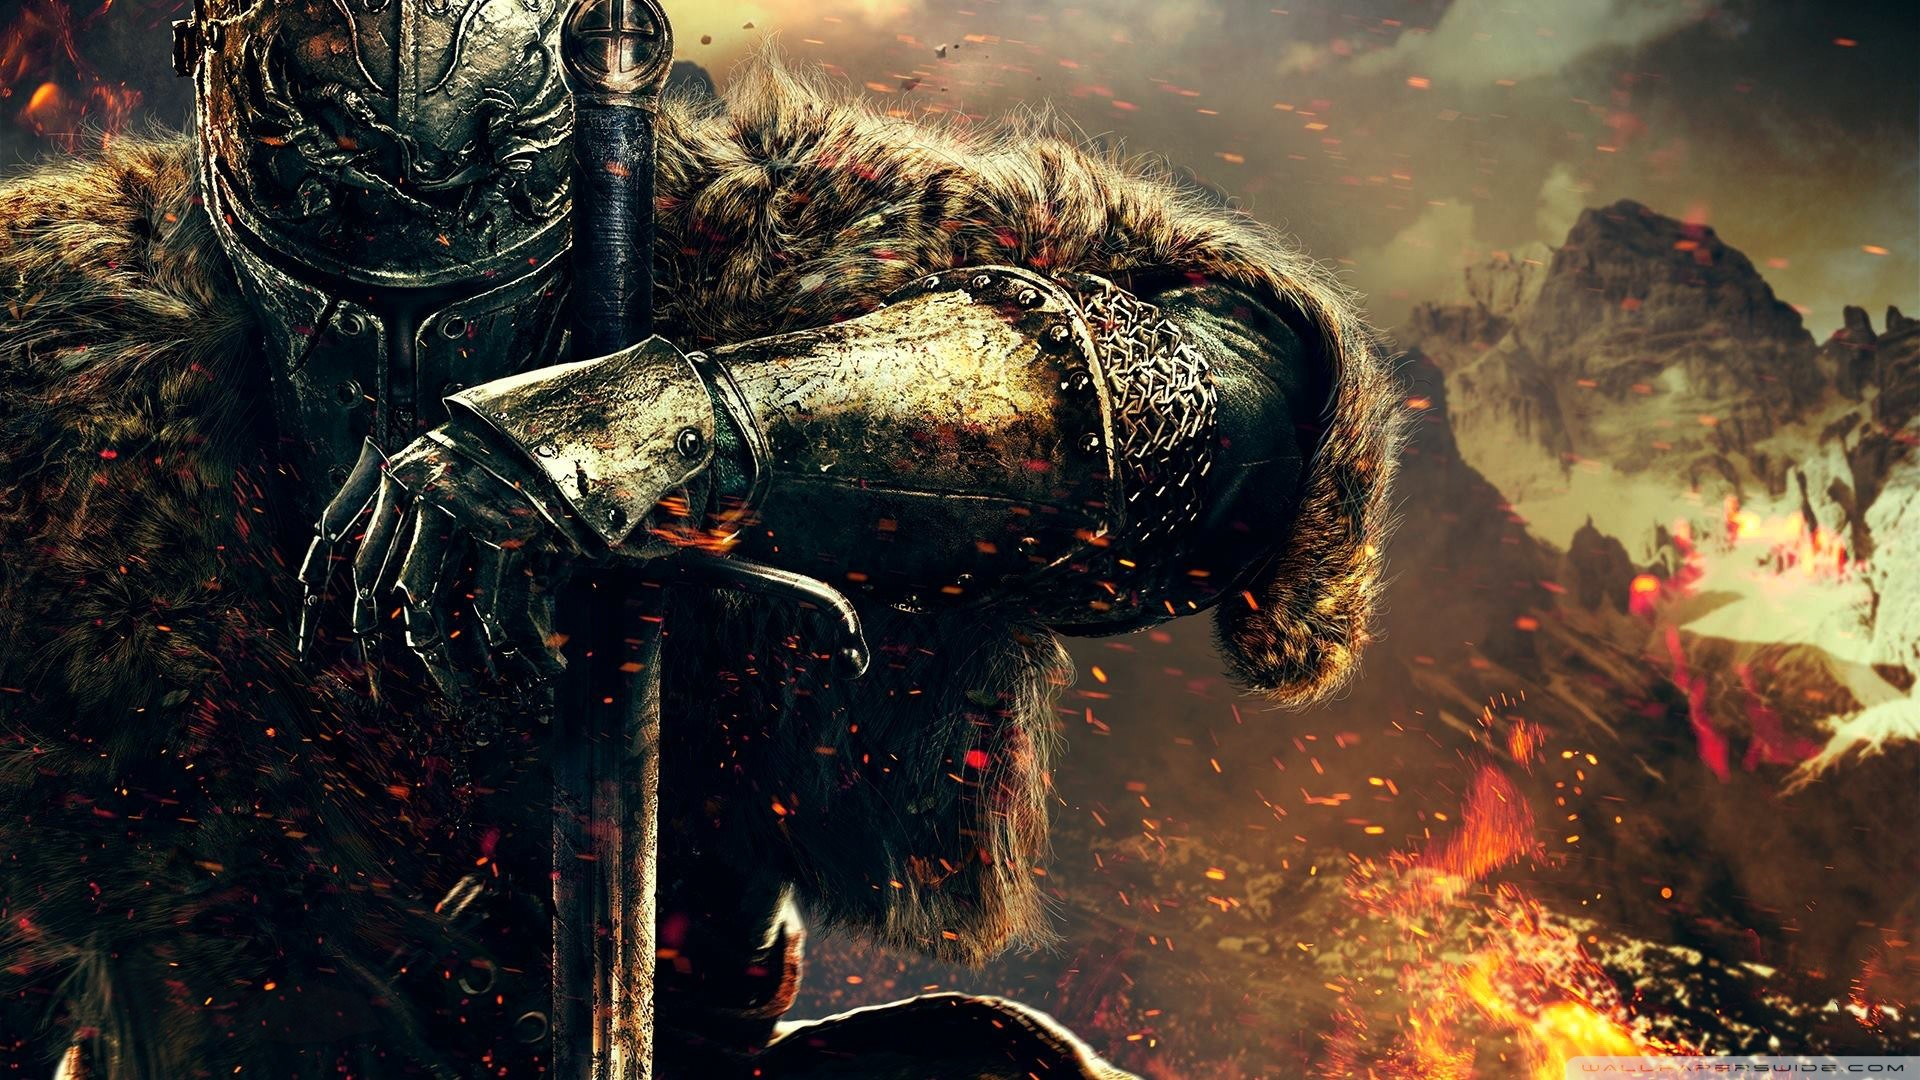 Dantes Inferno Wallpapers Hd 56 Images